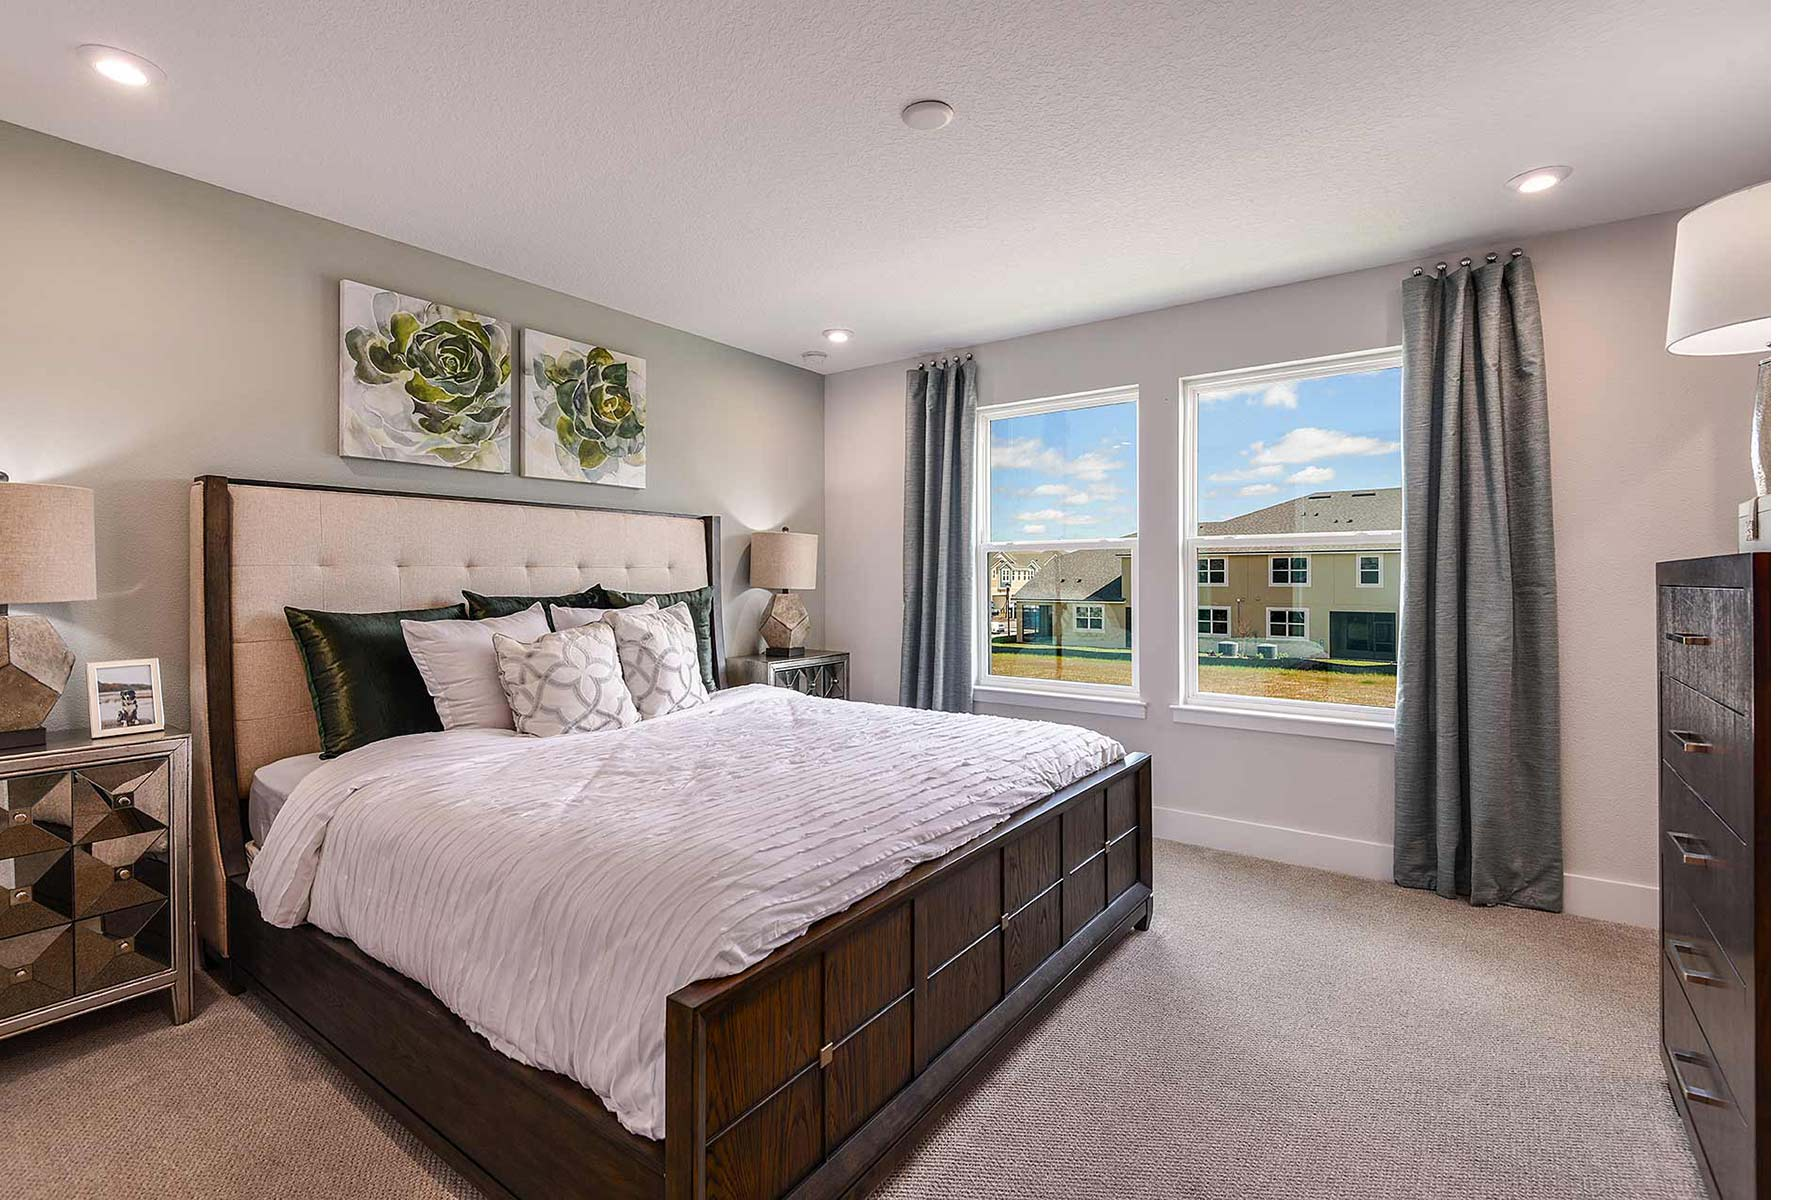 Marianna Plan Bedroom at Avea Pointe in Lutz Florida by Mattamy Homes